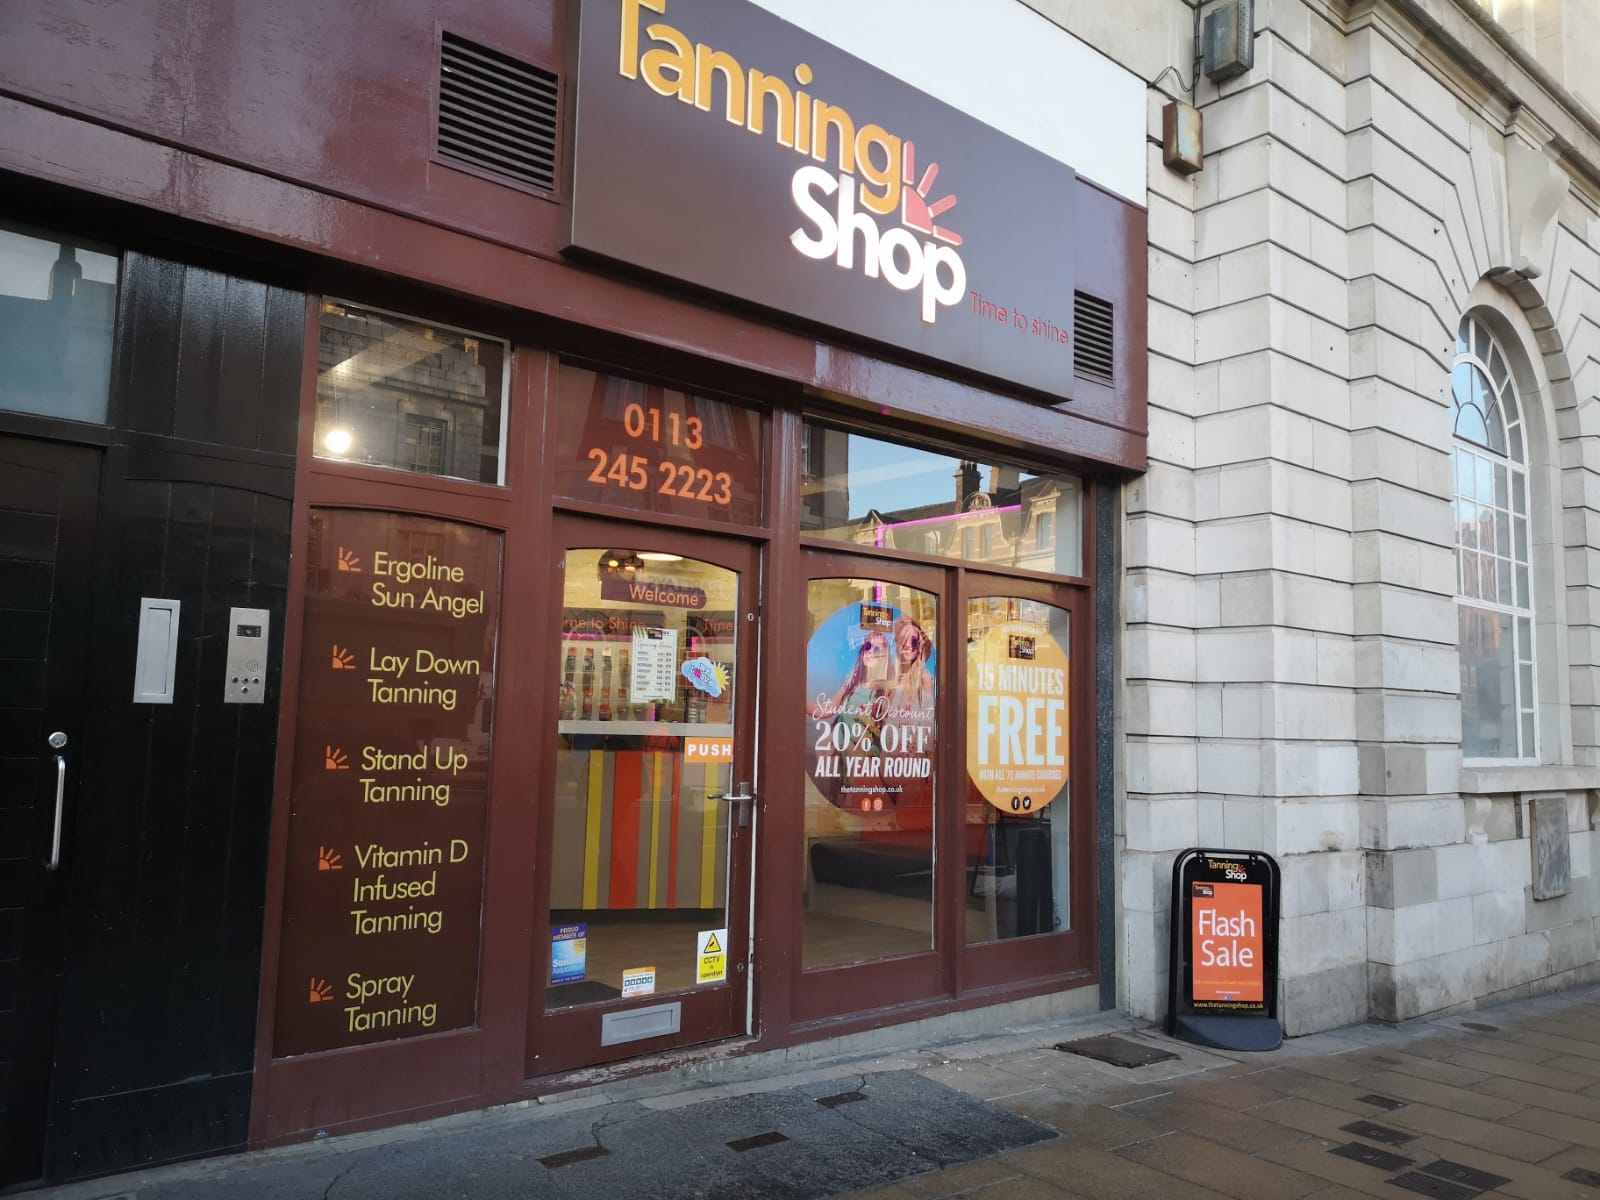 The Tanning Shop Leeds Central